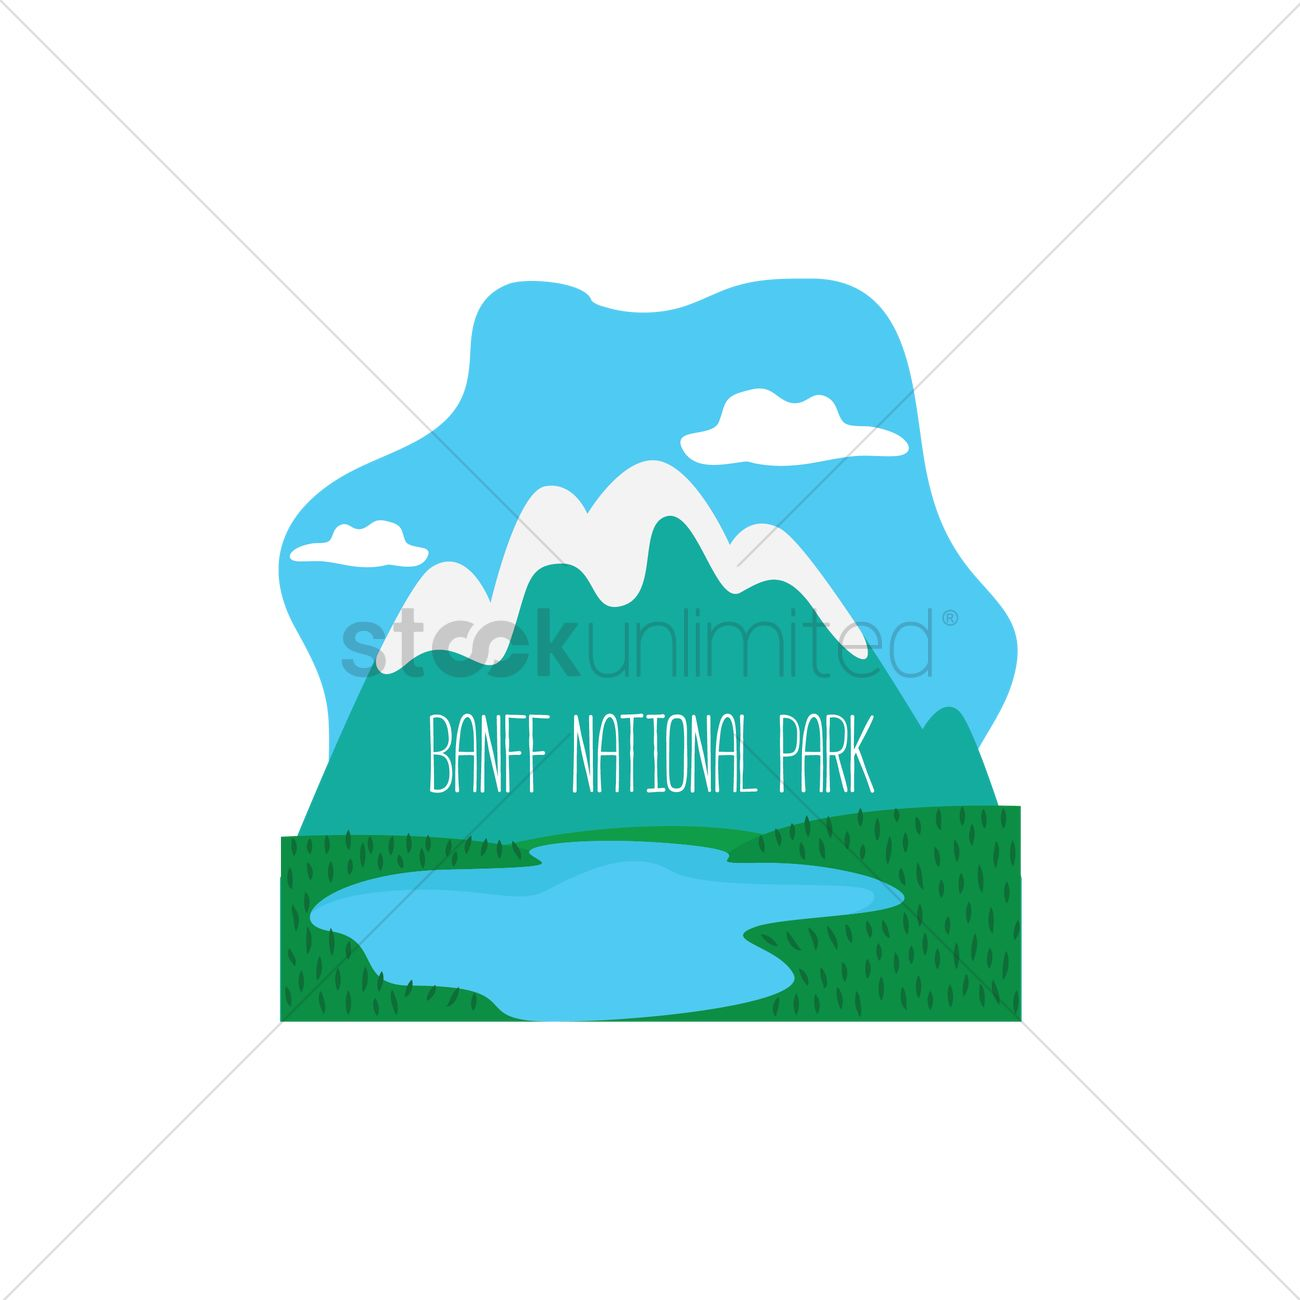 Banff National Park clipart #17, Download drawings